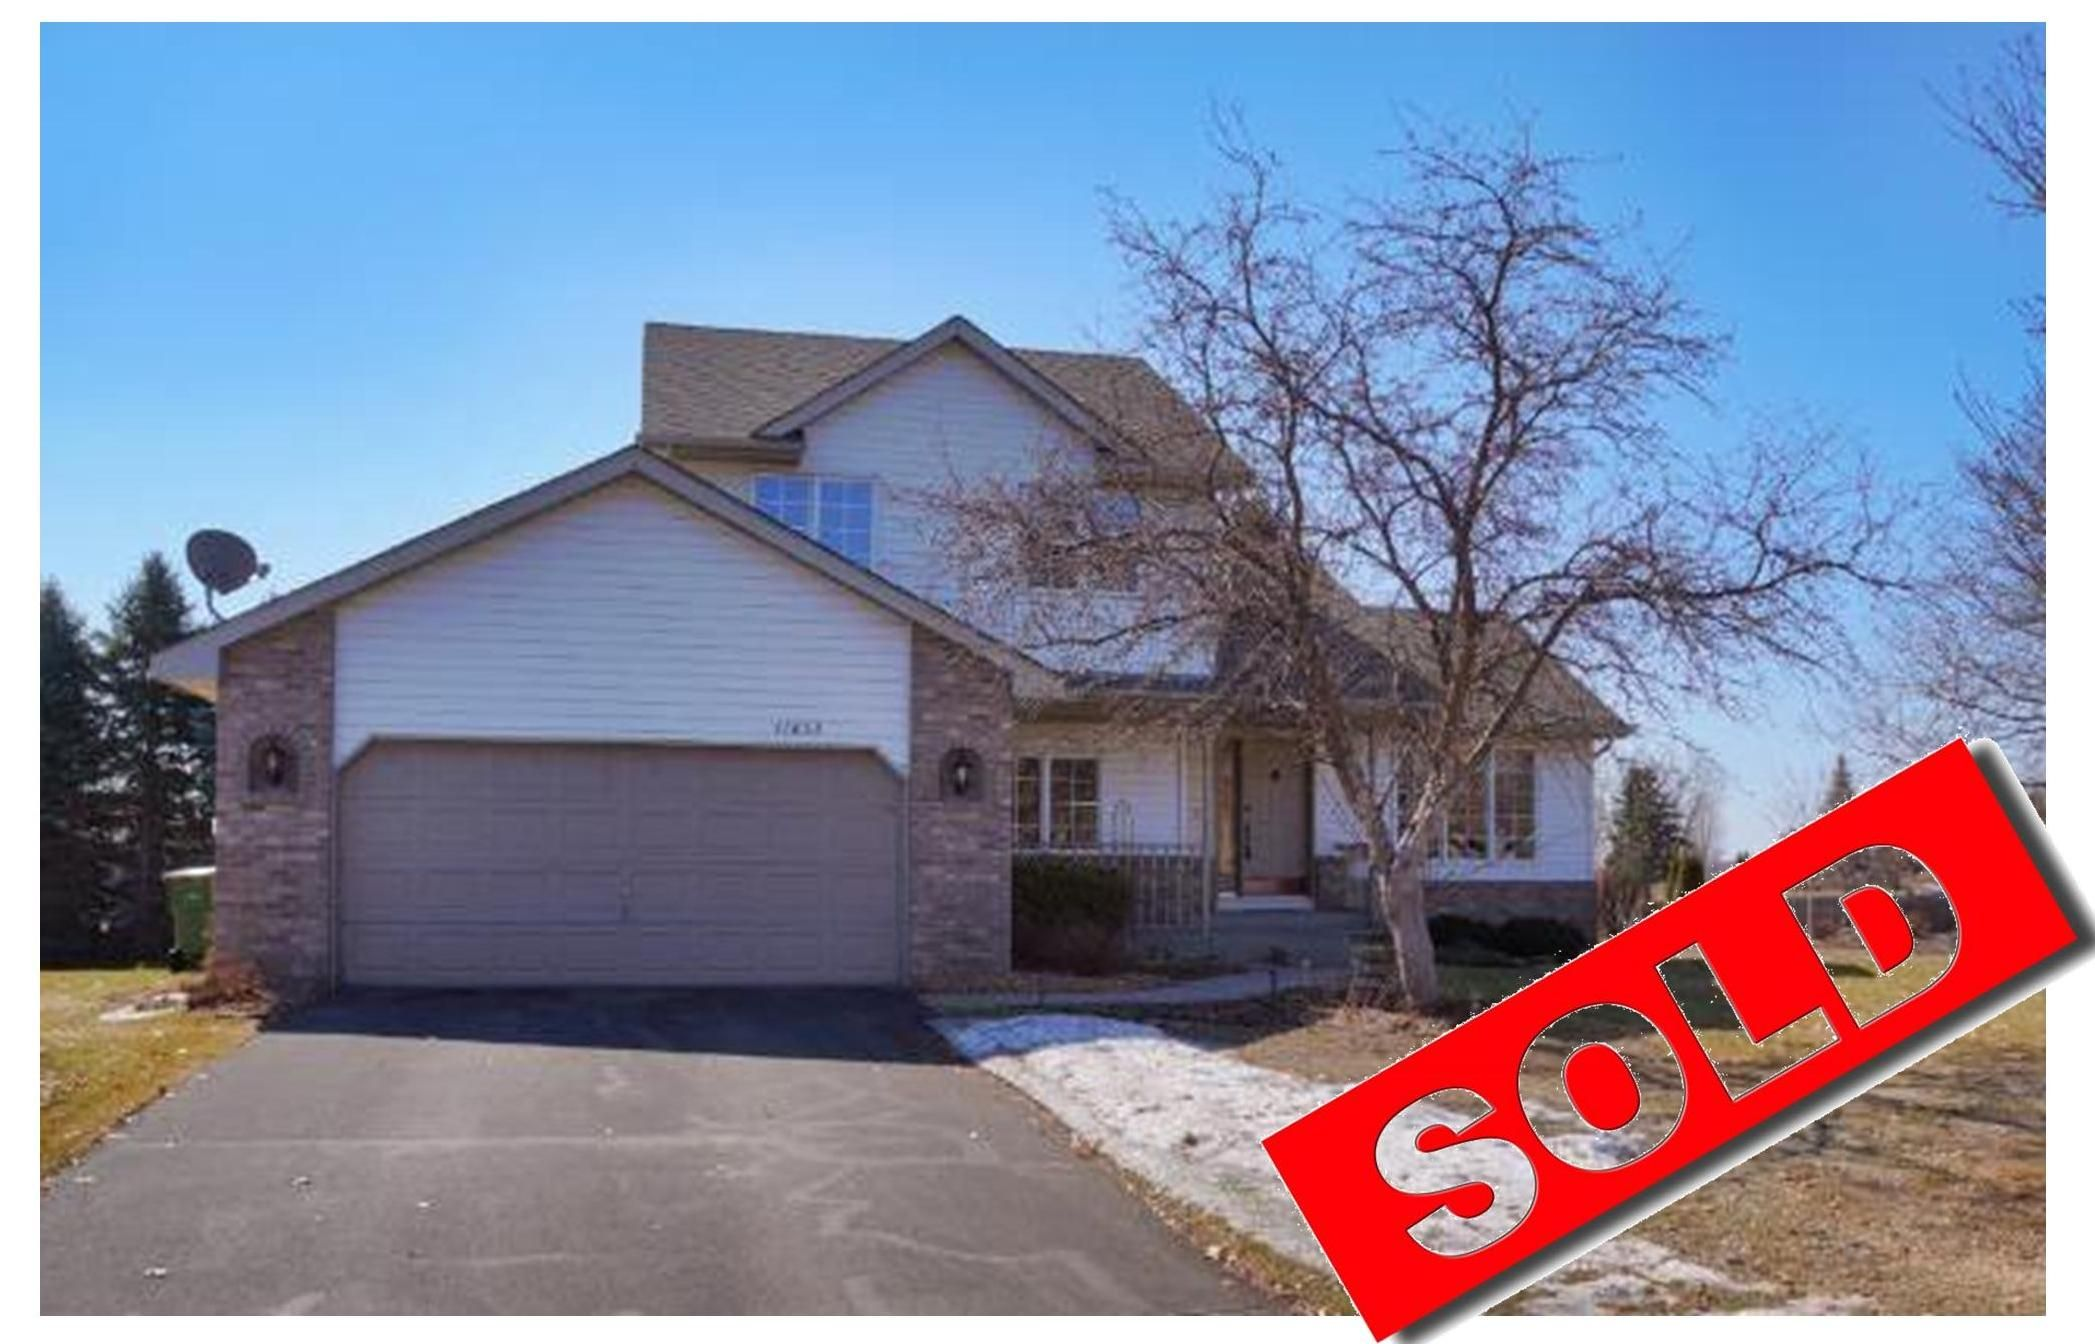 This home is perfect for a growing family! It's located on a quiet cul-de-sac and is minutes from multiple restaurants and parks! Located in Coon Rapids, MN. List price: $269,900; SOLD FOR $ 265,000!